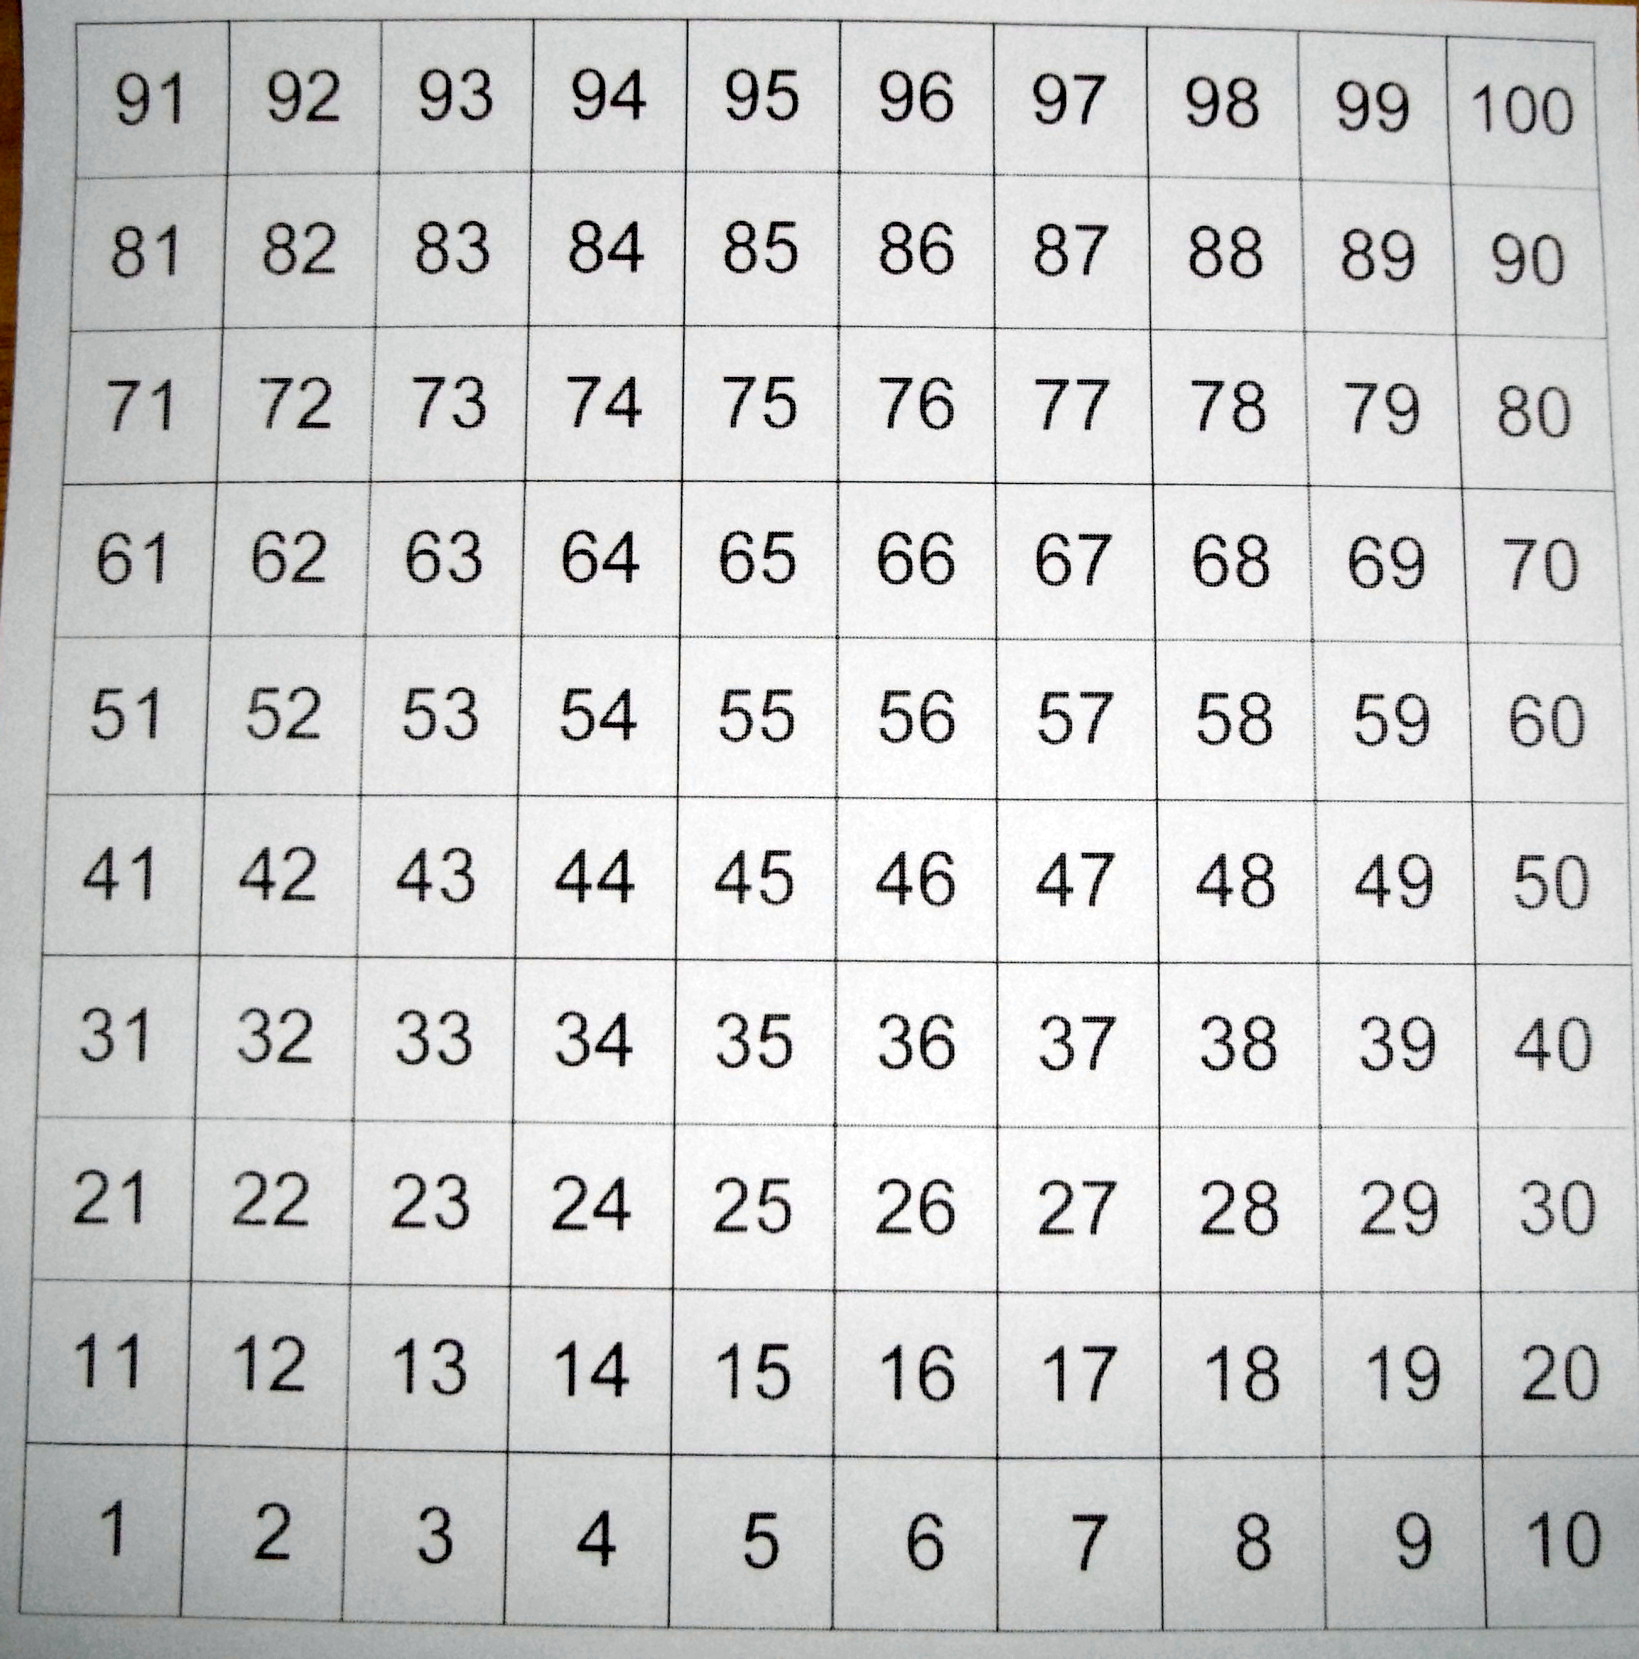 Search Results For Blank Hundred Square Calendar